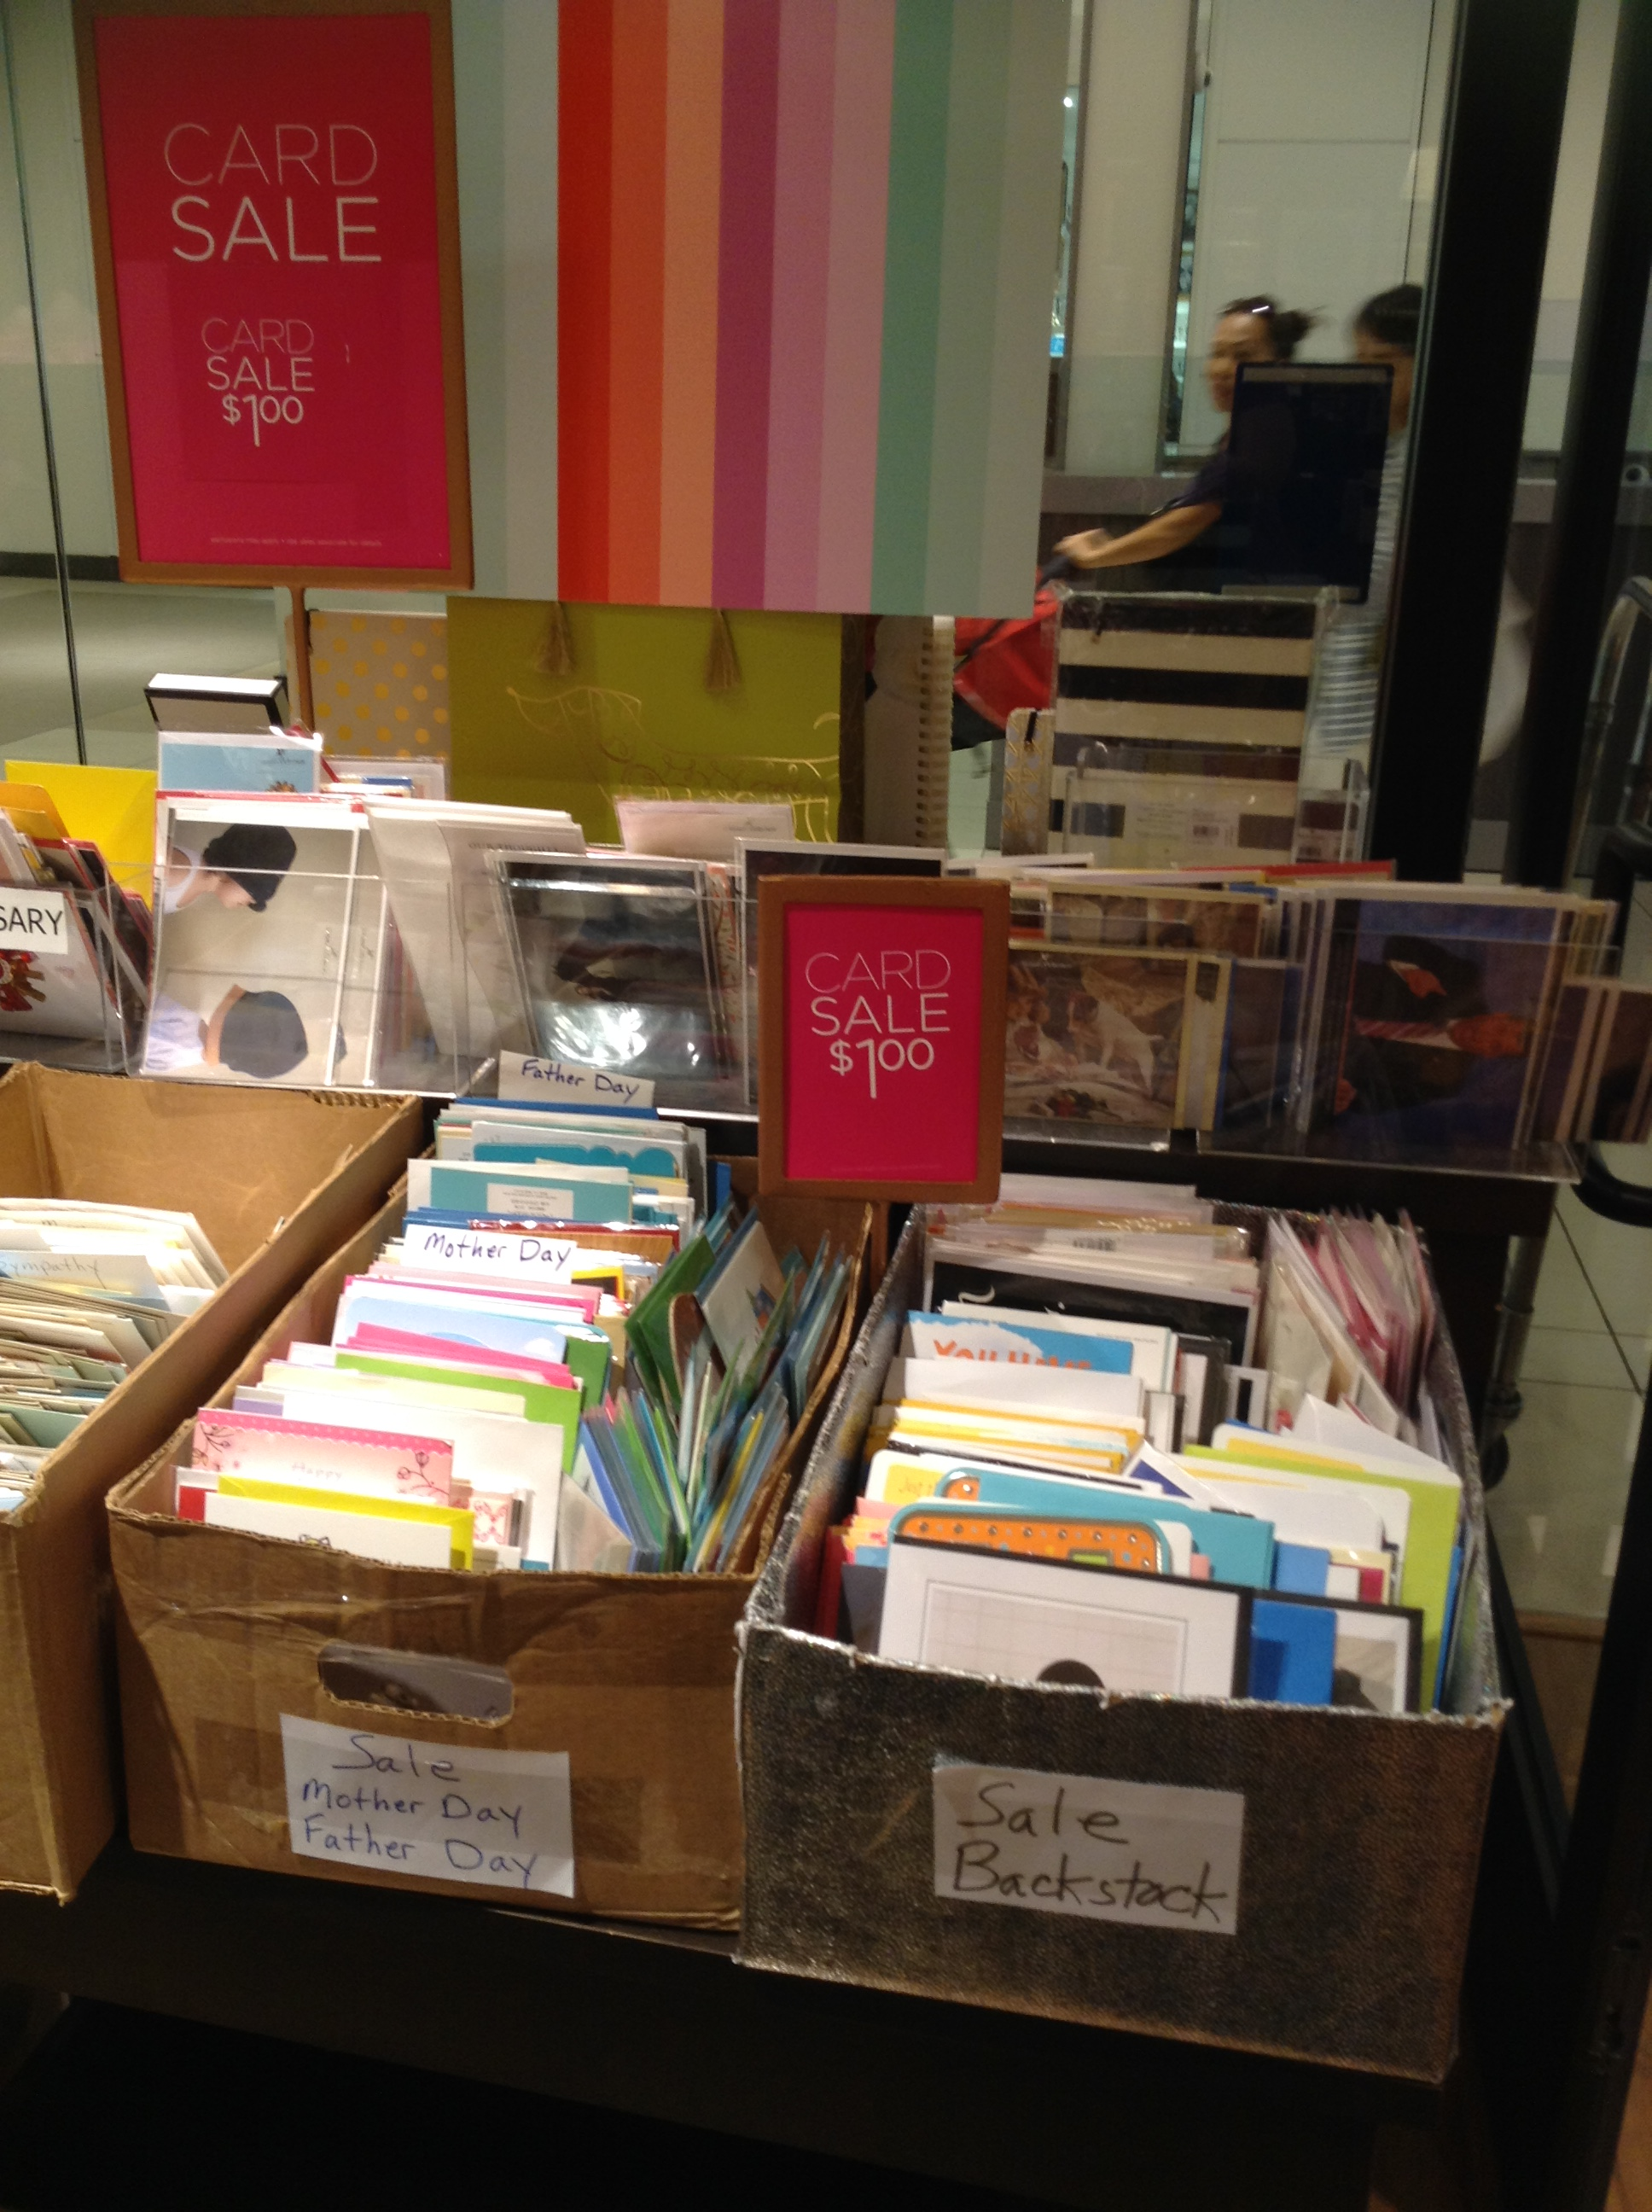 Papyrus: Clearance up to 90% off including $1 greeting cards | Kare ...